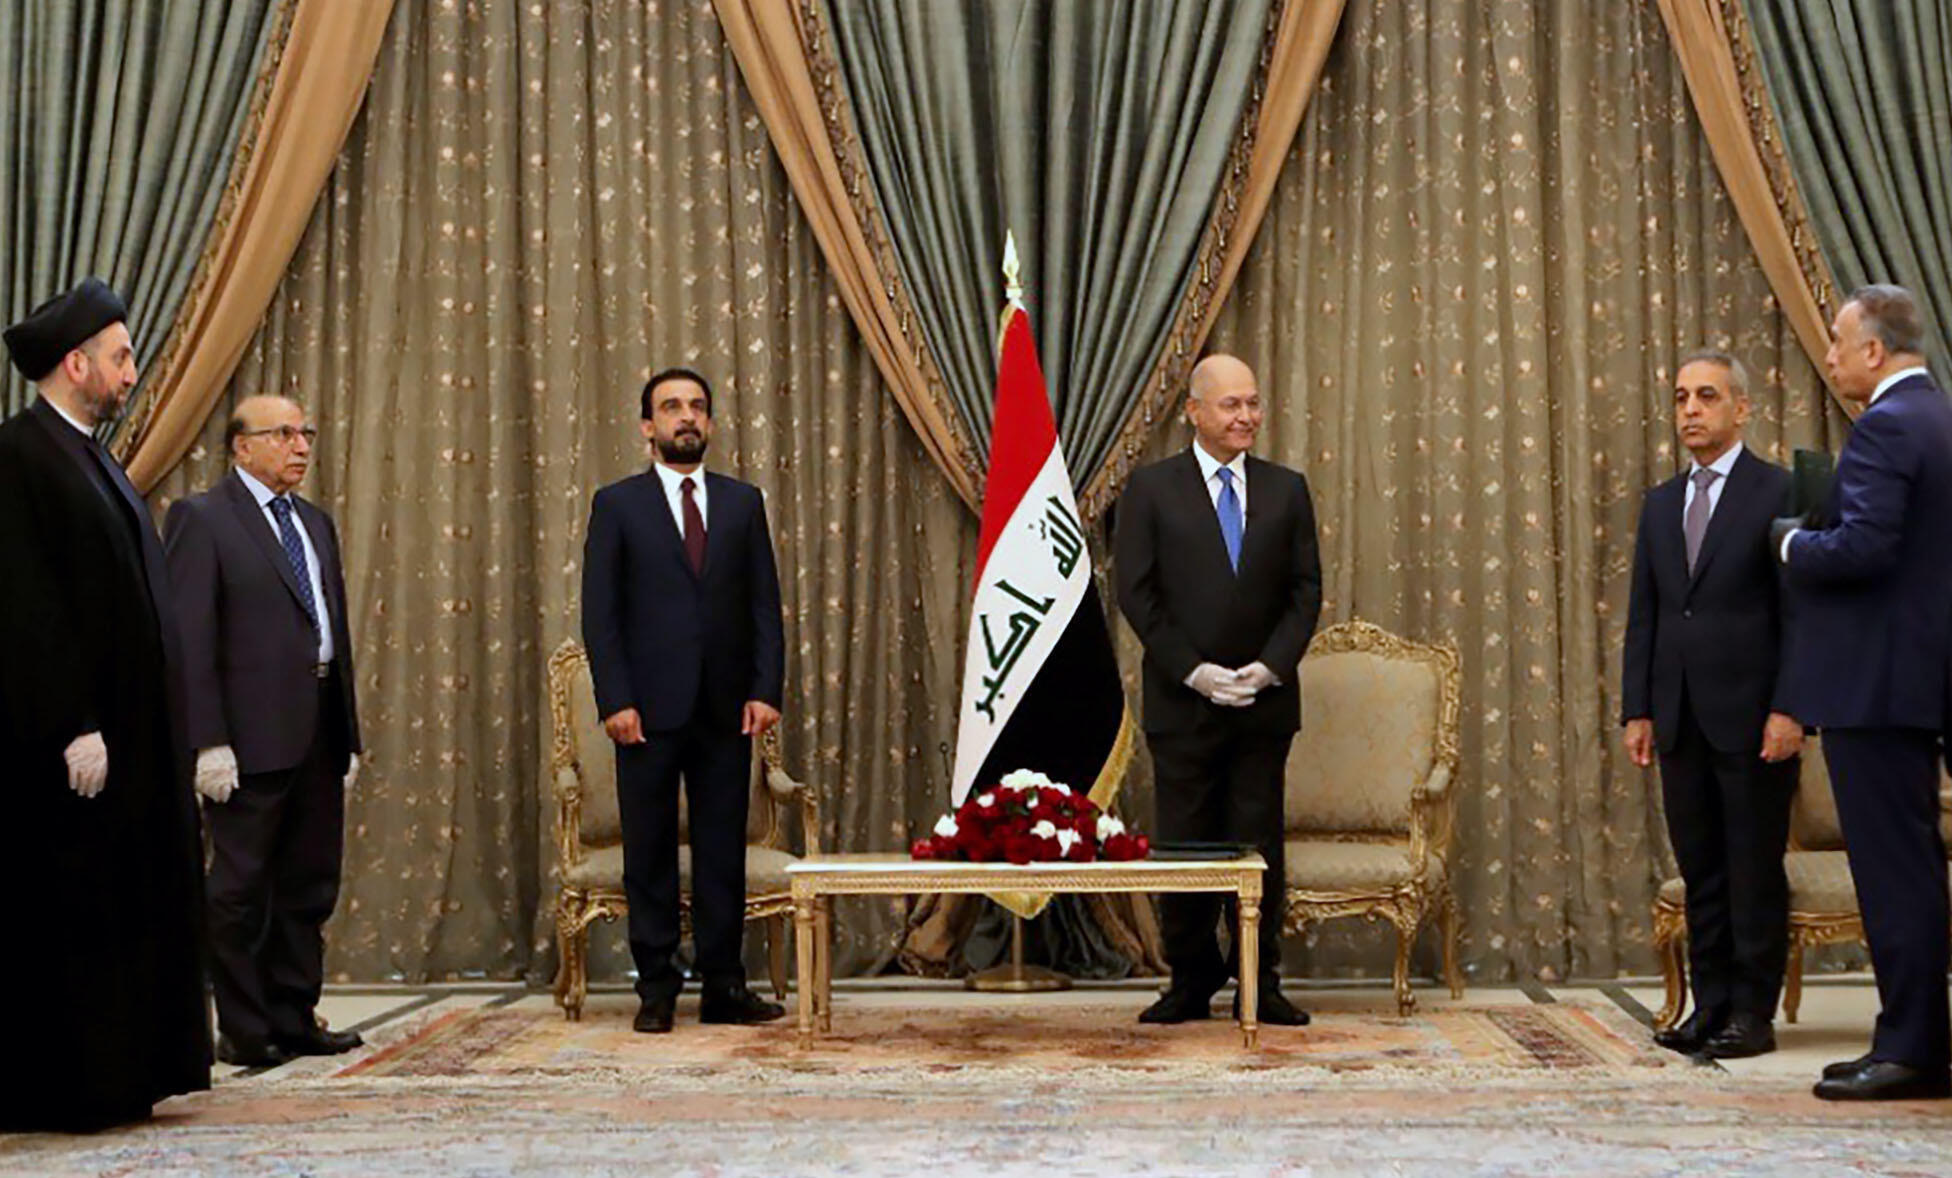 A handout picture released by the media office of the Iraqi presidency on April 9, 2020 showing President Barham Saleh (third from right) with his new prime minister-designate Mustafa Kadhemi (right).